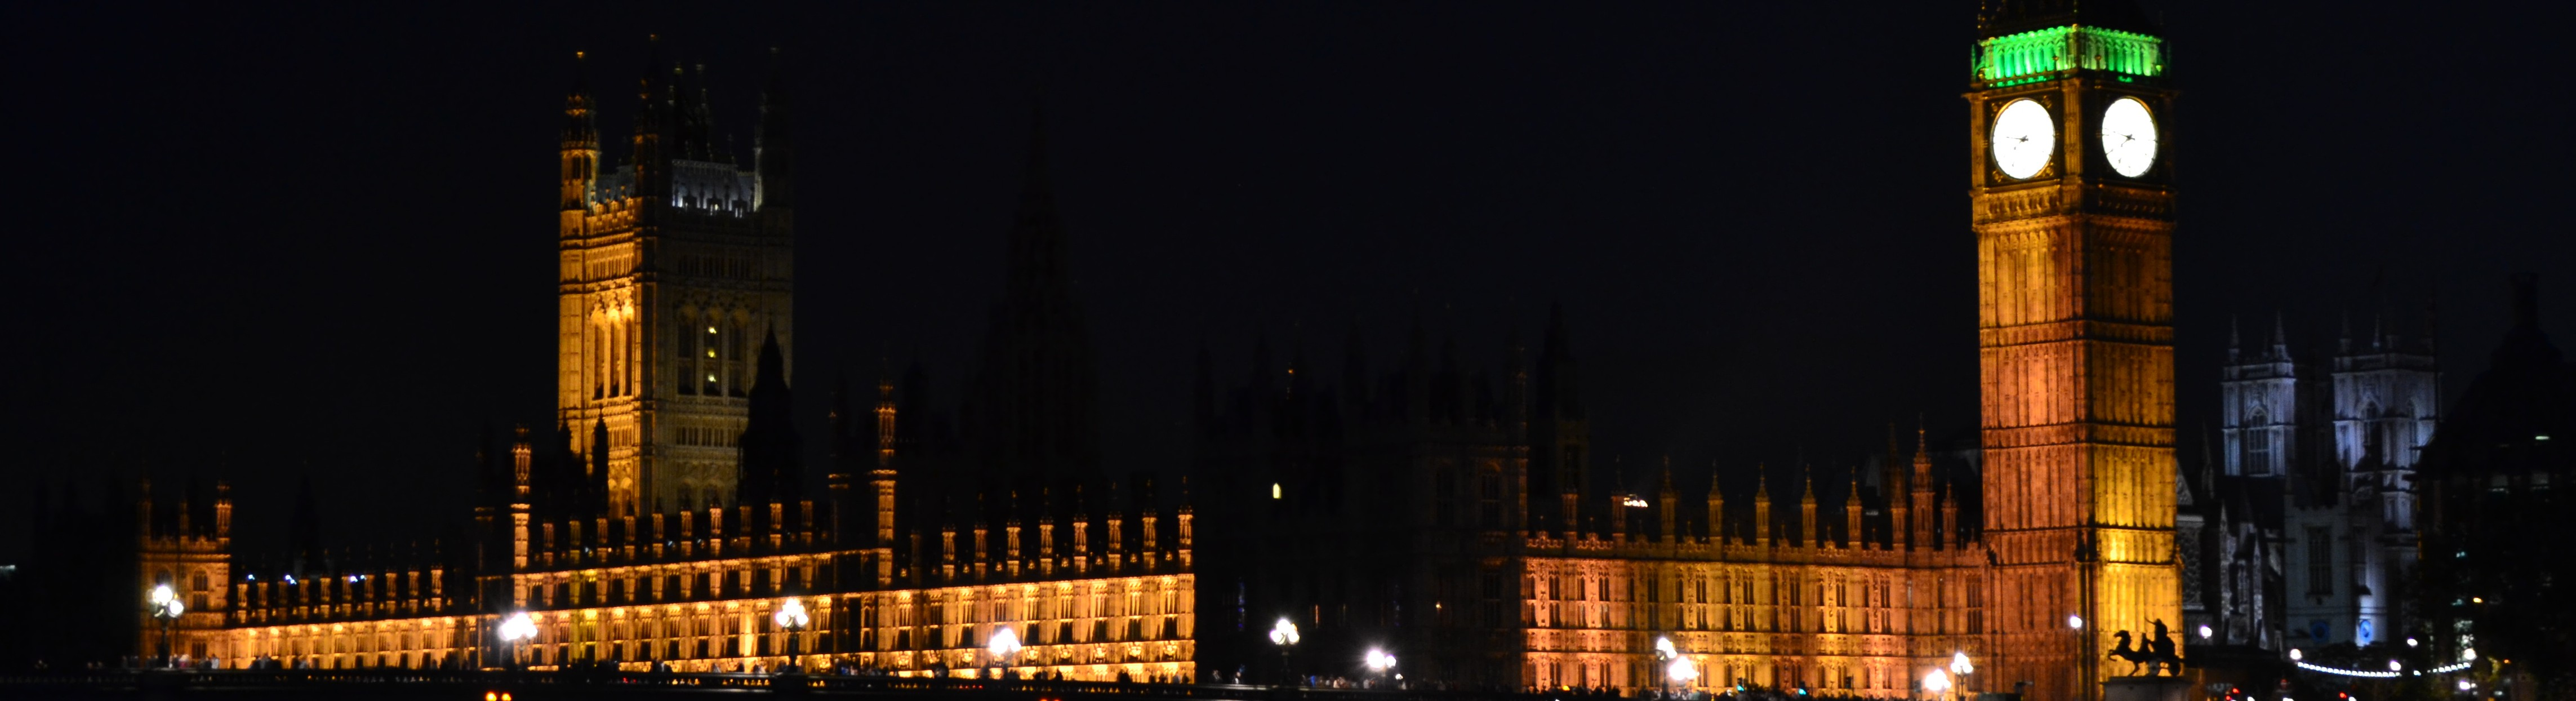 big ben and parliment